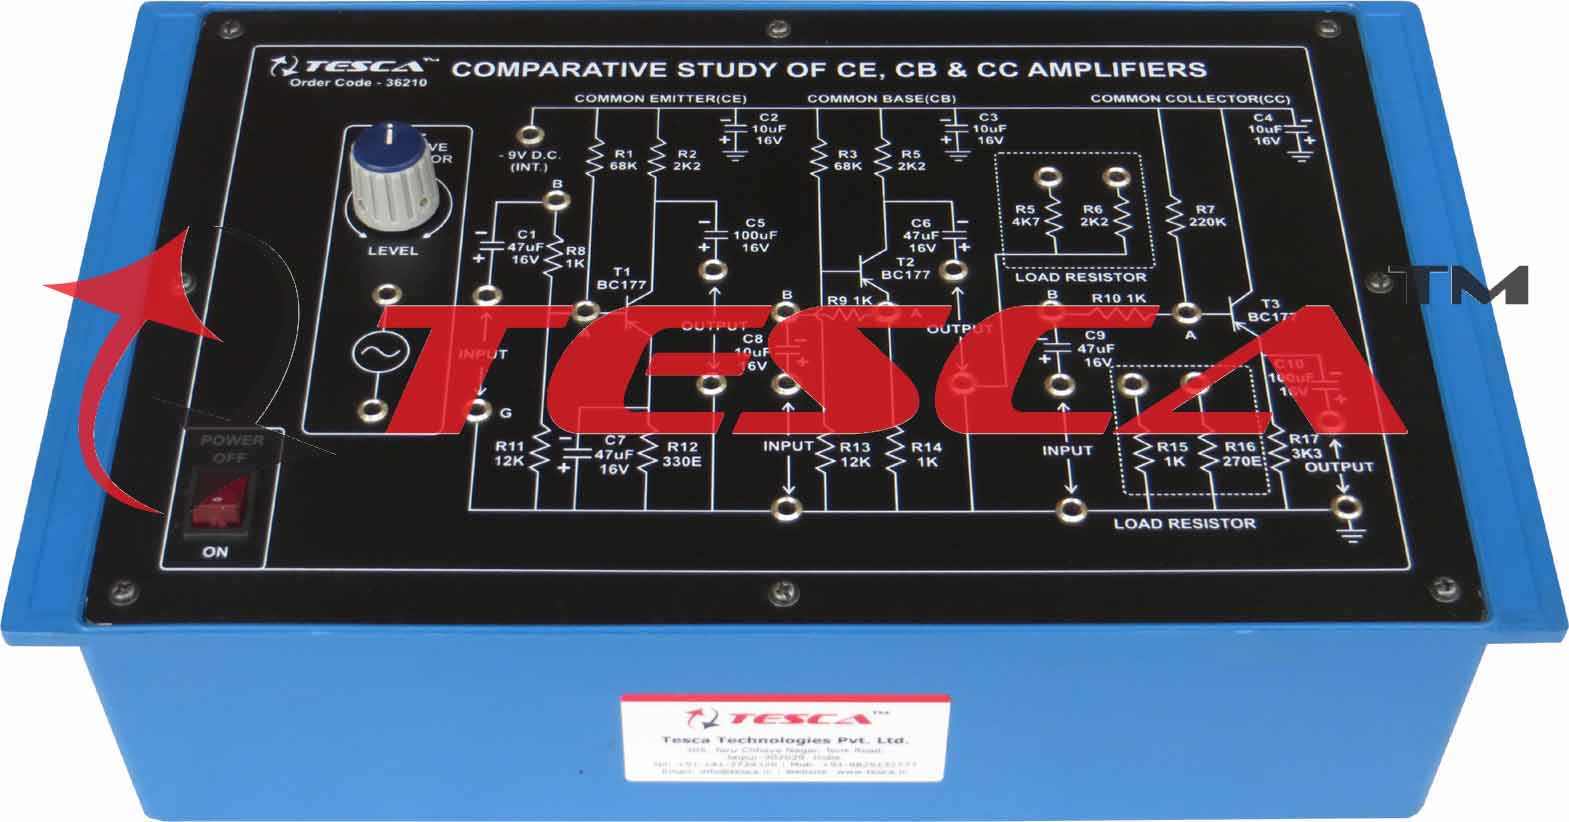 Comparative Study Of Ce Cb Cc Amplifiers With Power Supply And Technical Amplifier Circuit Oscillator 1khz